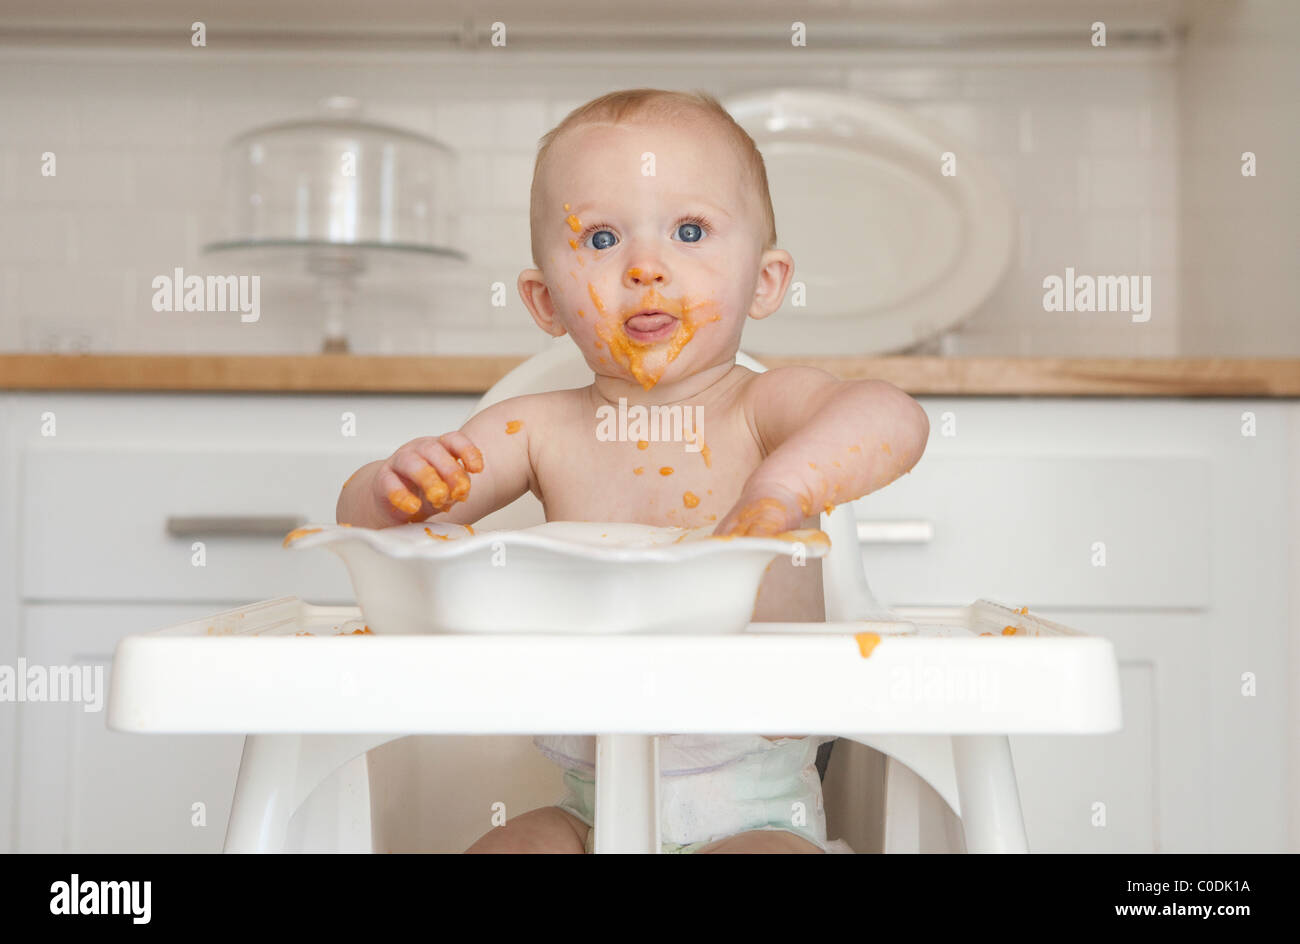 Messy baby eating in high chair - Stock Image